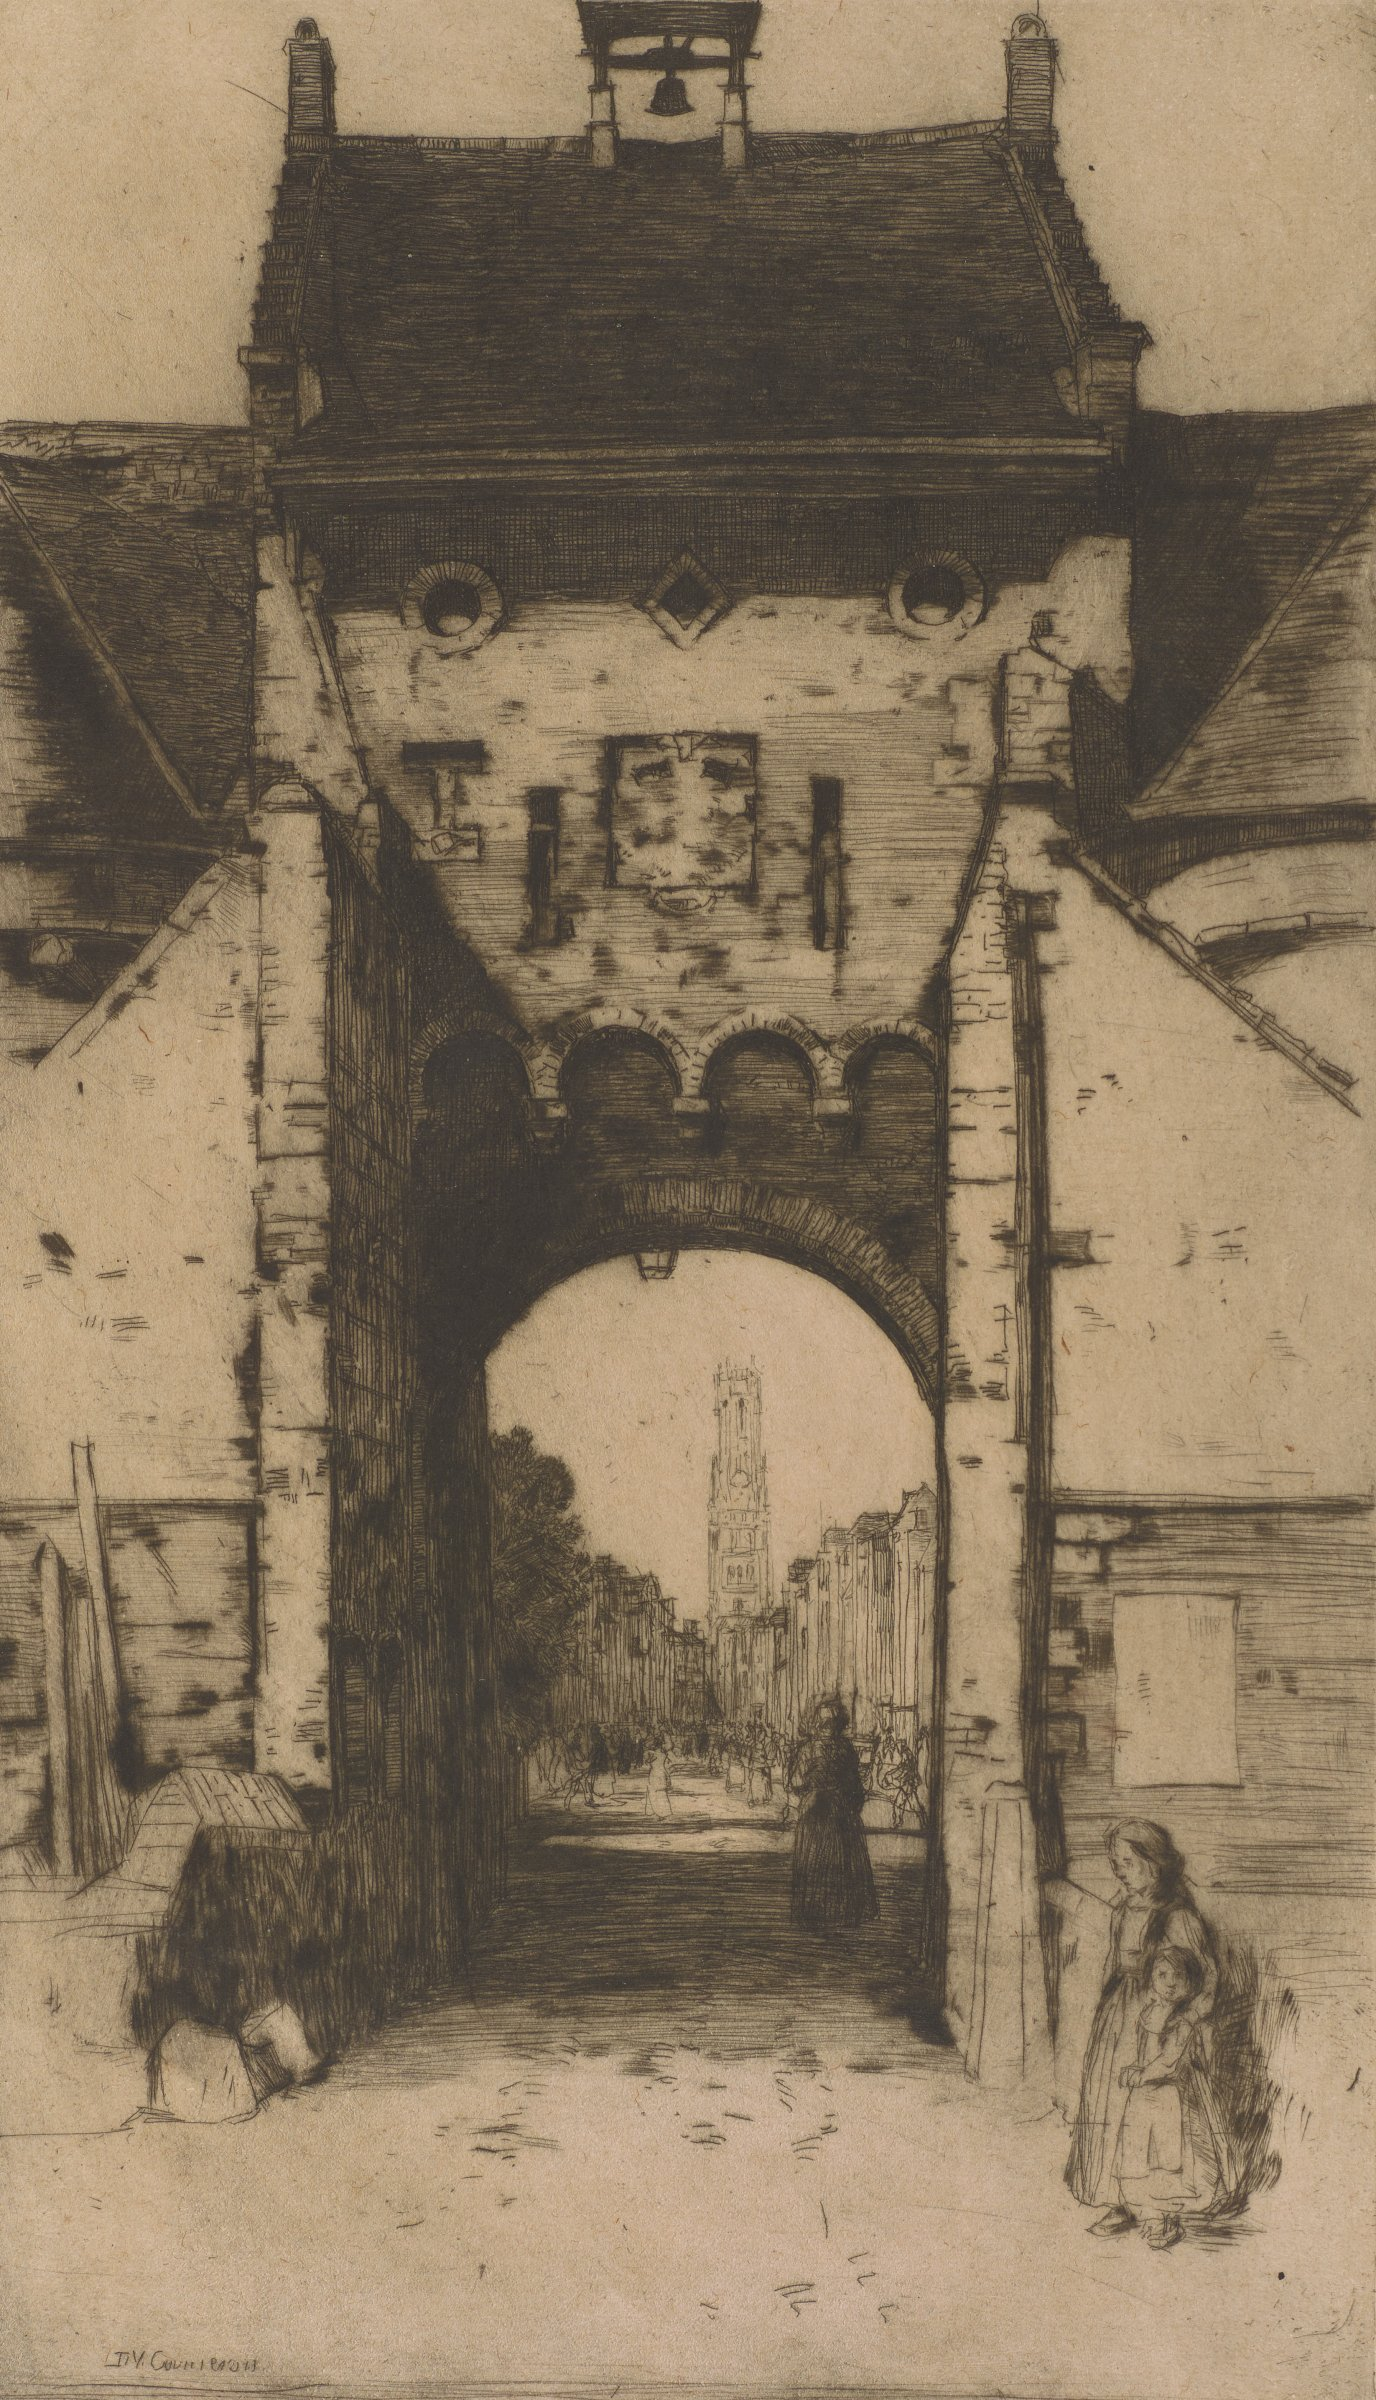 View of the Gateway of Bruges with two children standing in the right foreground. The Belfry is seen through the archway in the distance.